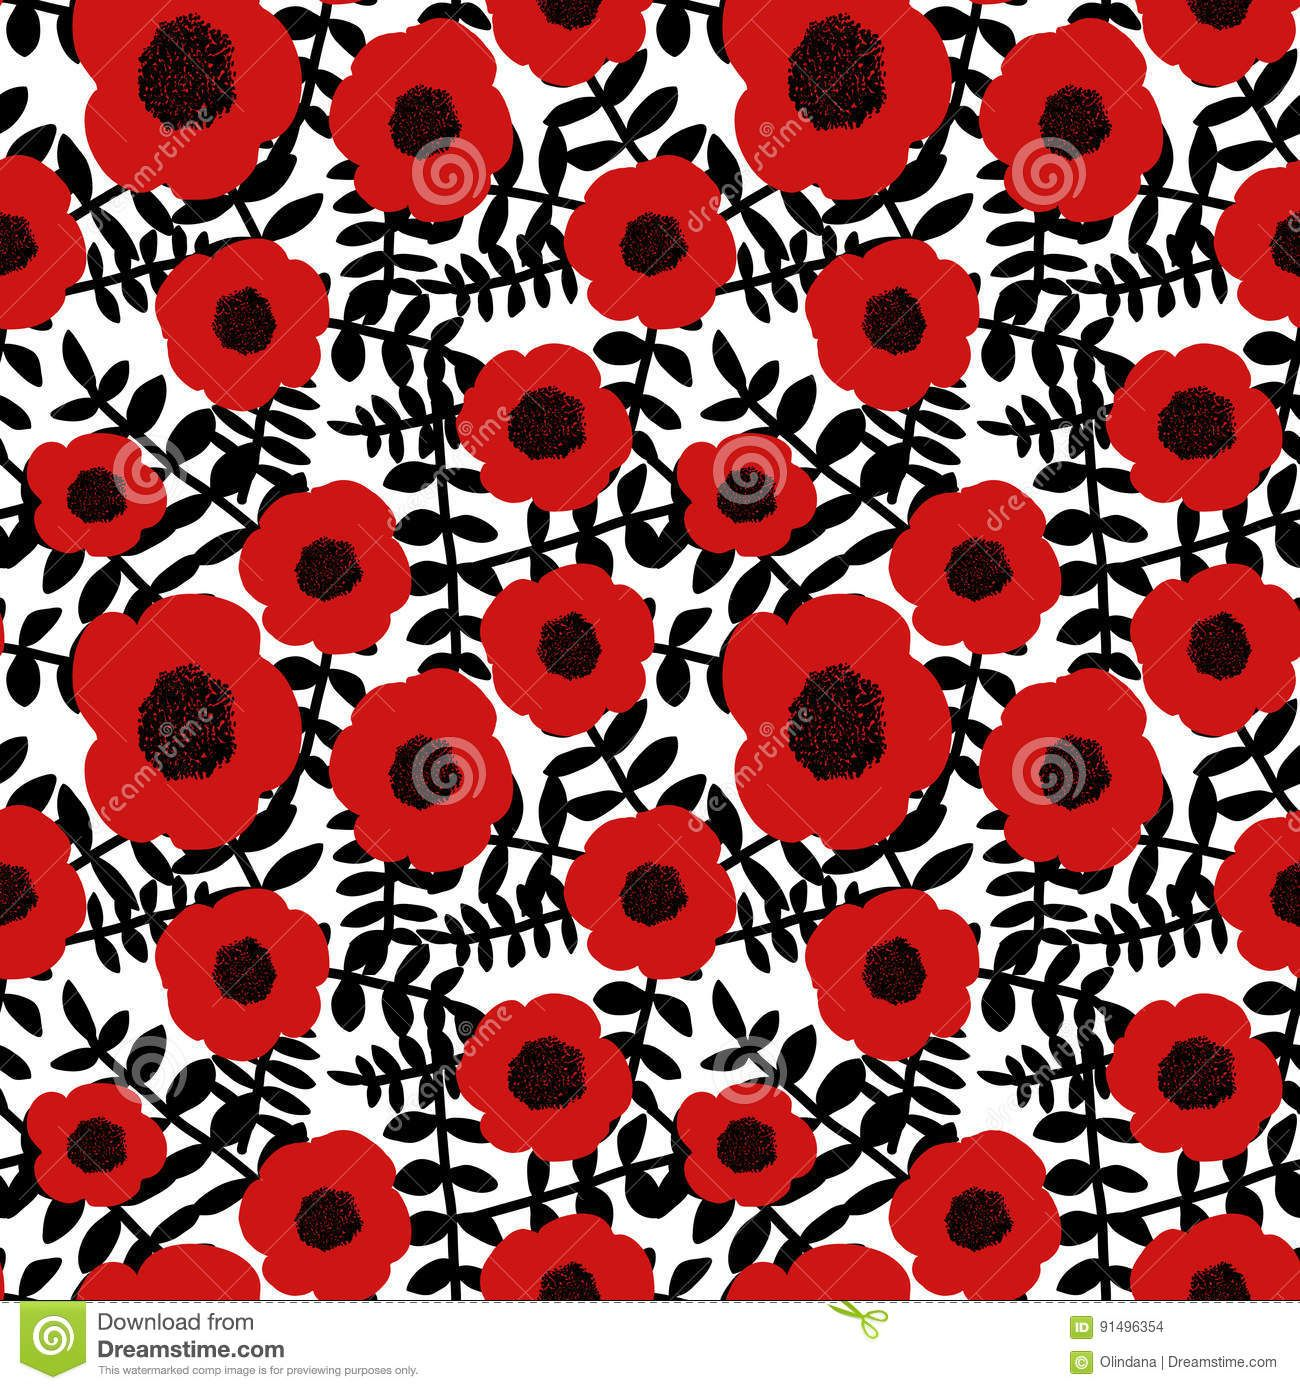 Seamless Floral Pattern Hand Drawn Abstract Red Poppy Flowers Black Twigs Leaves White Background Fabric Wallpa Floral Illustrations Red Poppies Poppy Flower